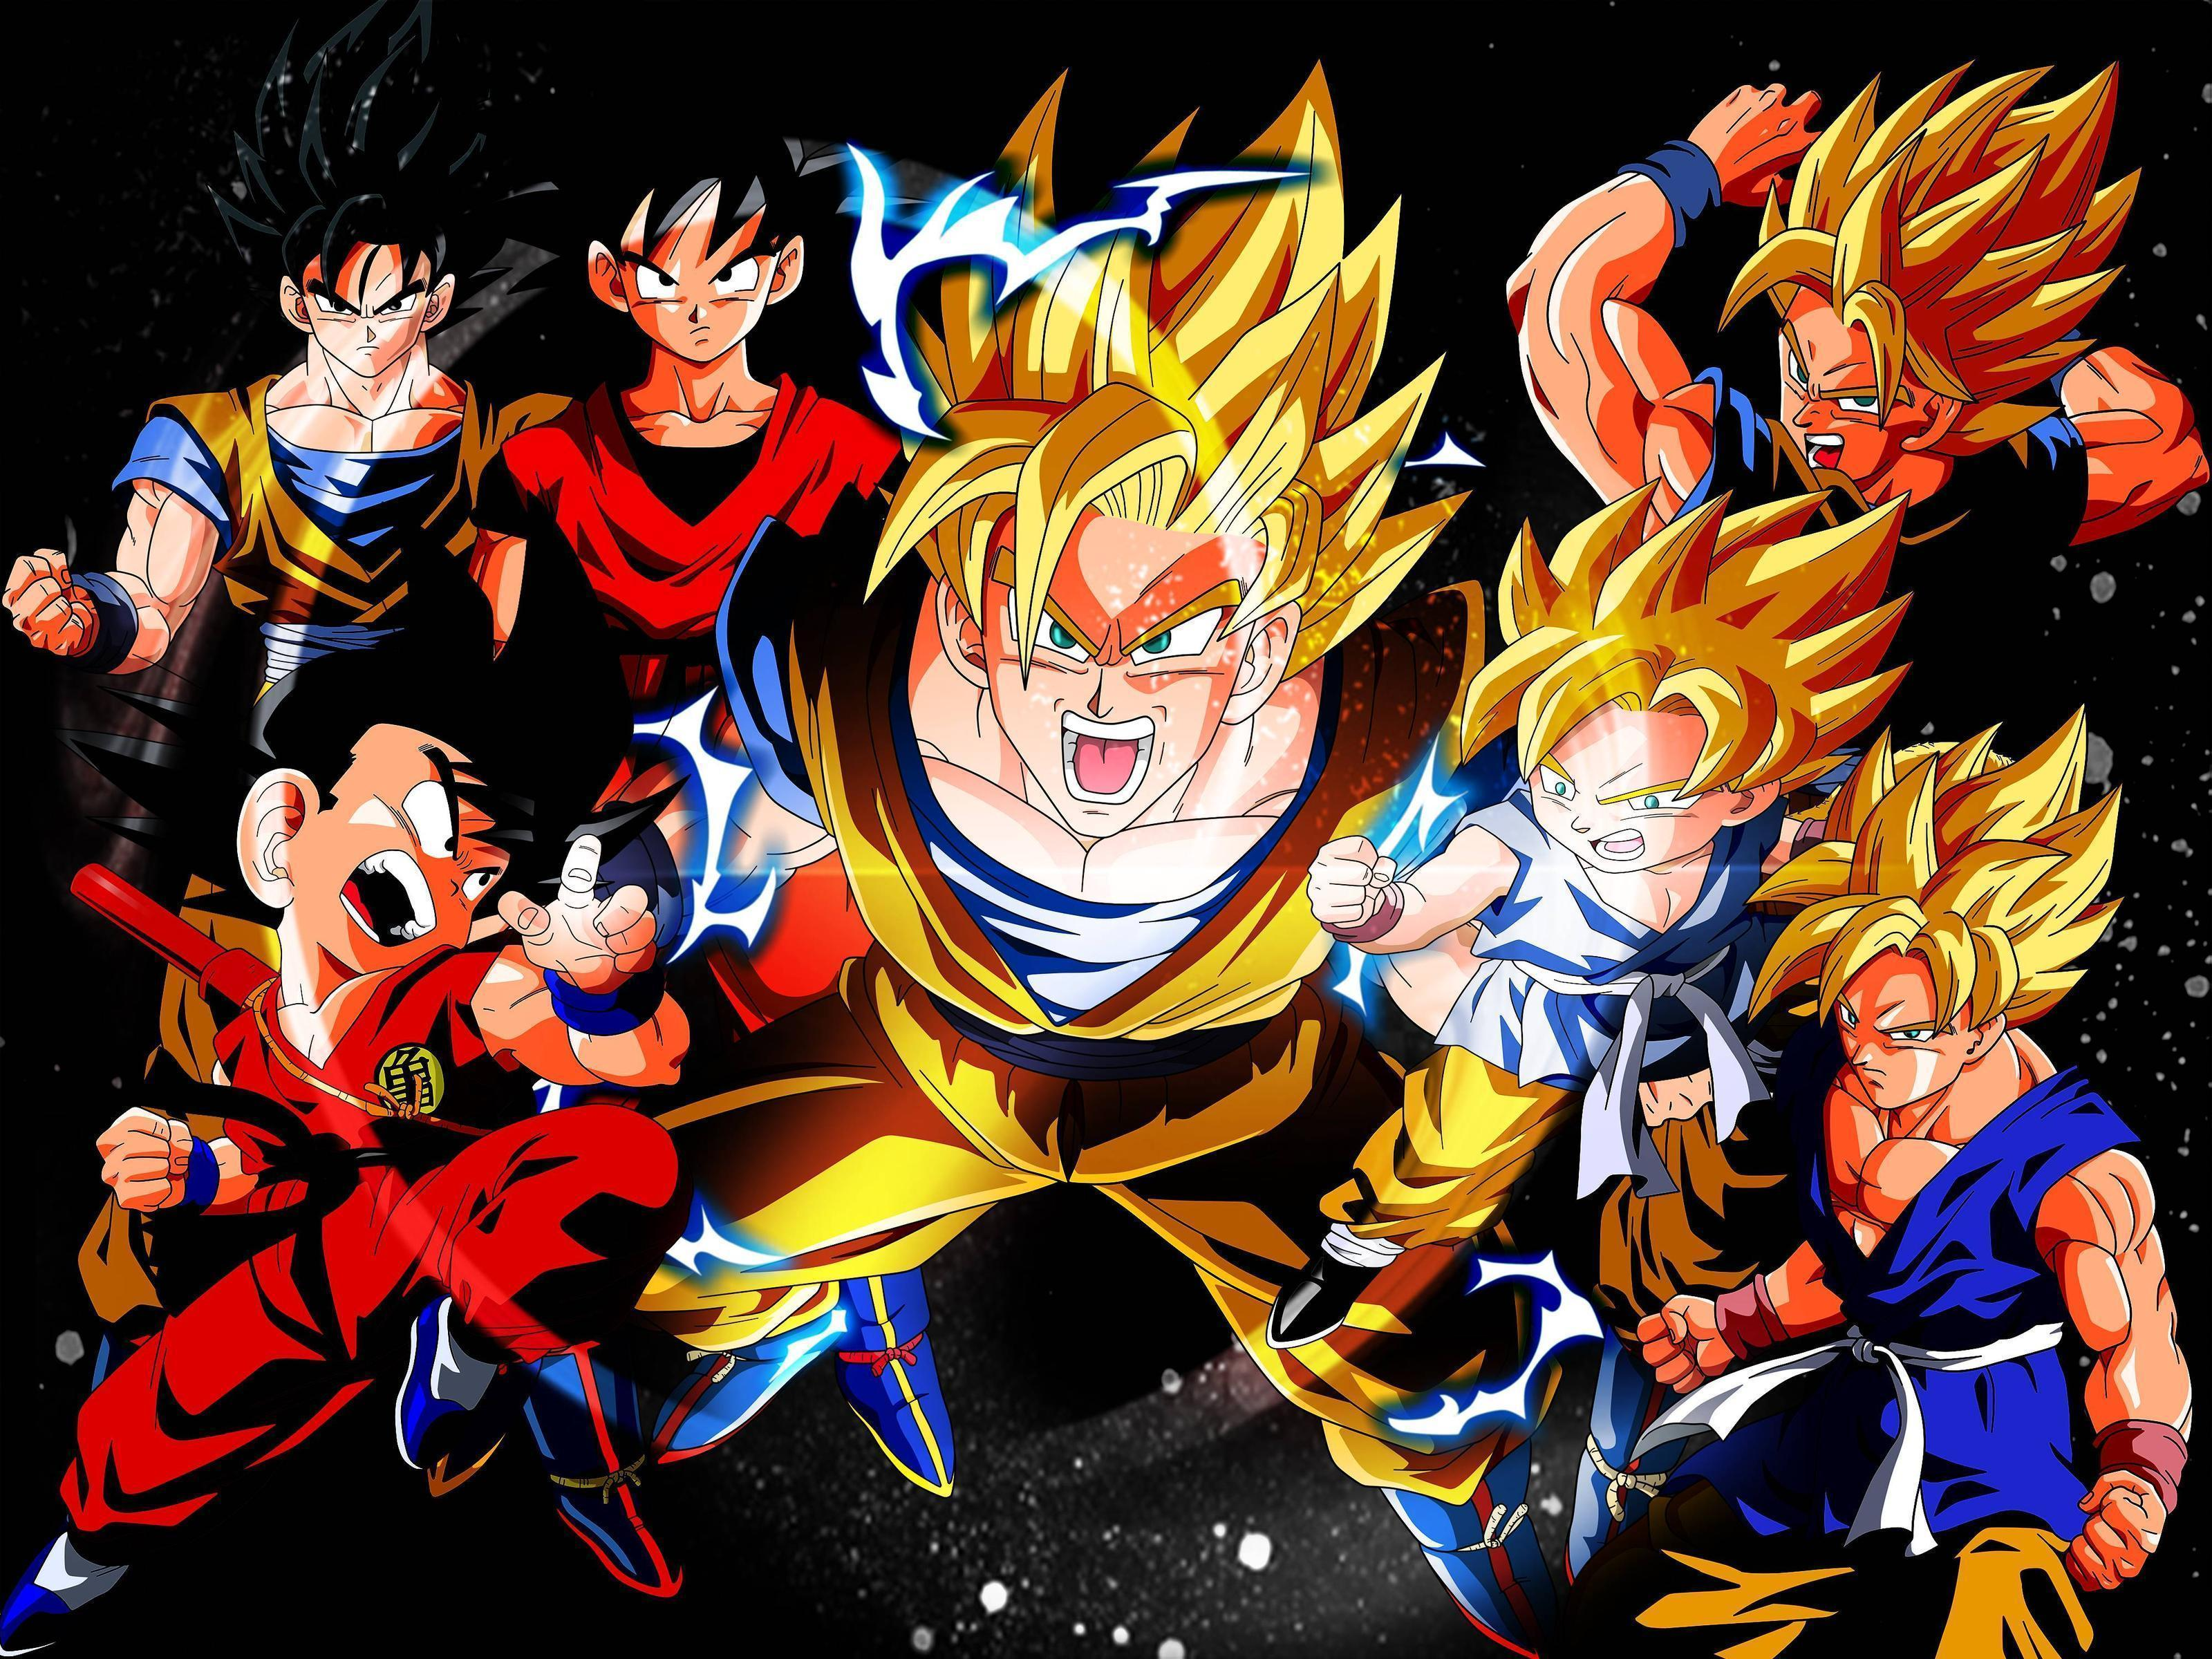 Goku wallpaper by acidlullaby08 on deviantart